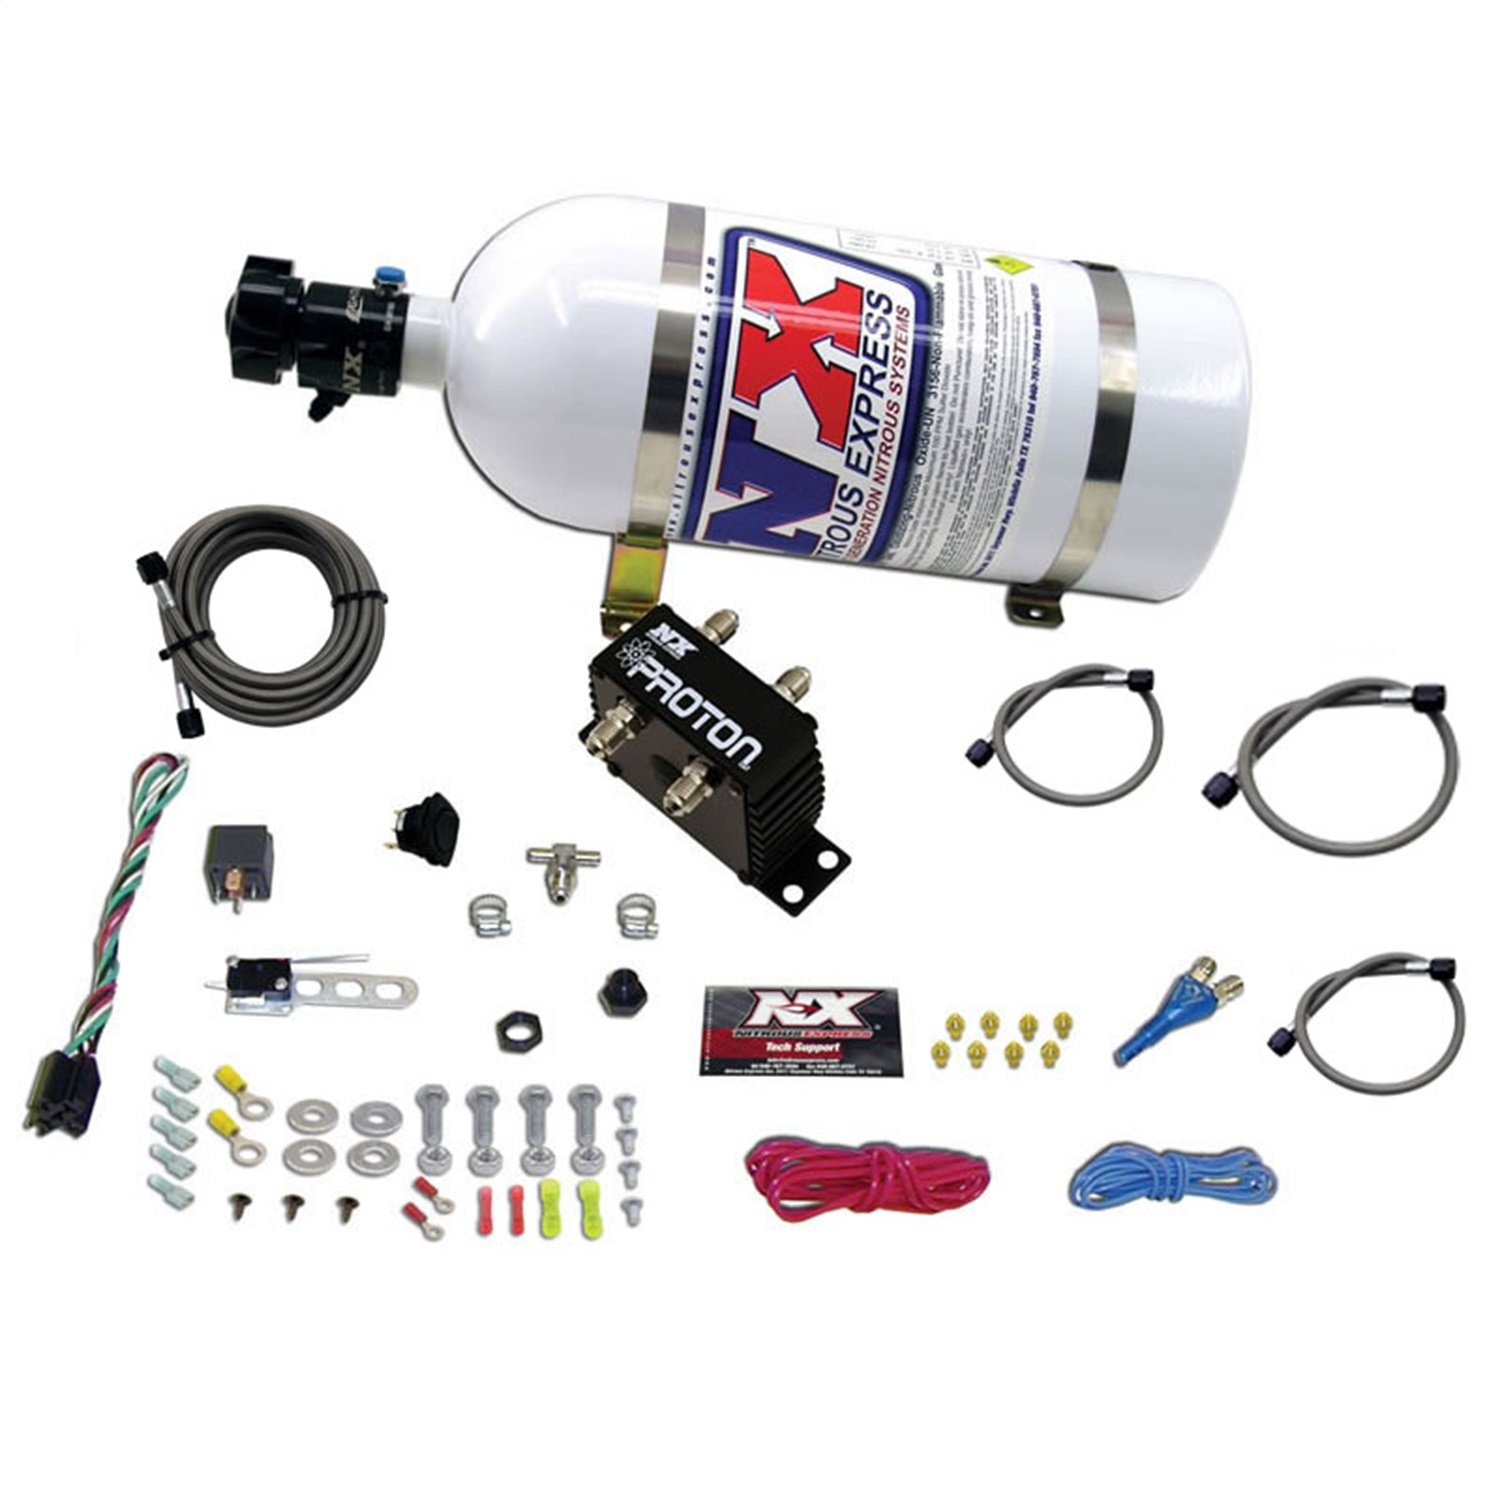 Nitrous Express 20421 10 Proton Plus System With Solenoid Wiring Diagram Lbs Bottle Automotive